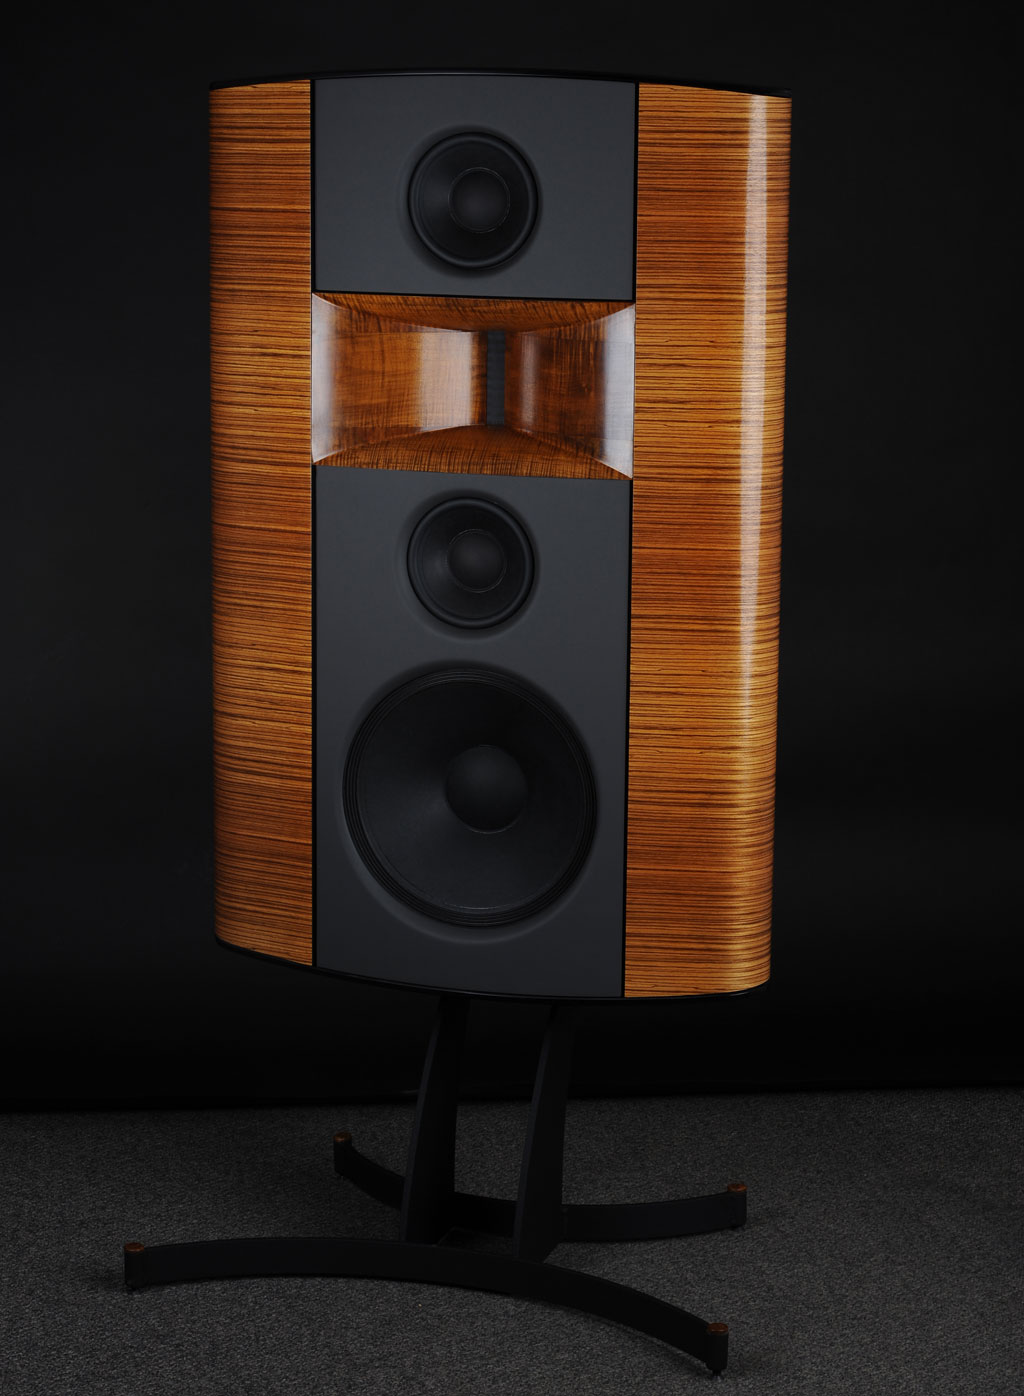 Triad Speakers, Inc. will be releasing its new Cinema Reference loudspeaker system